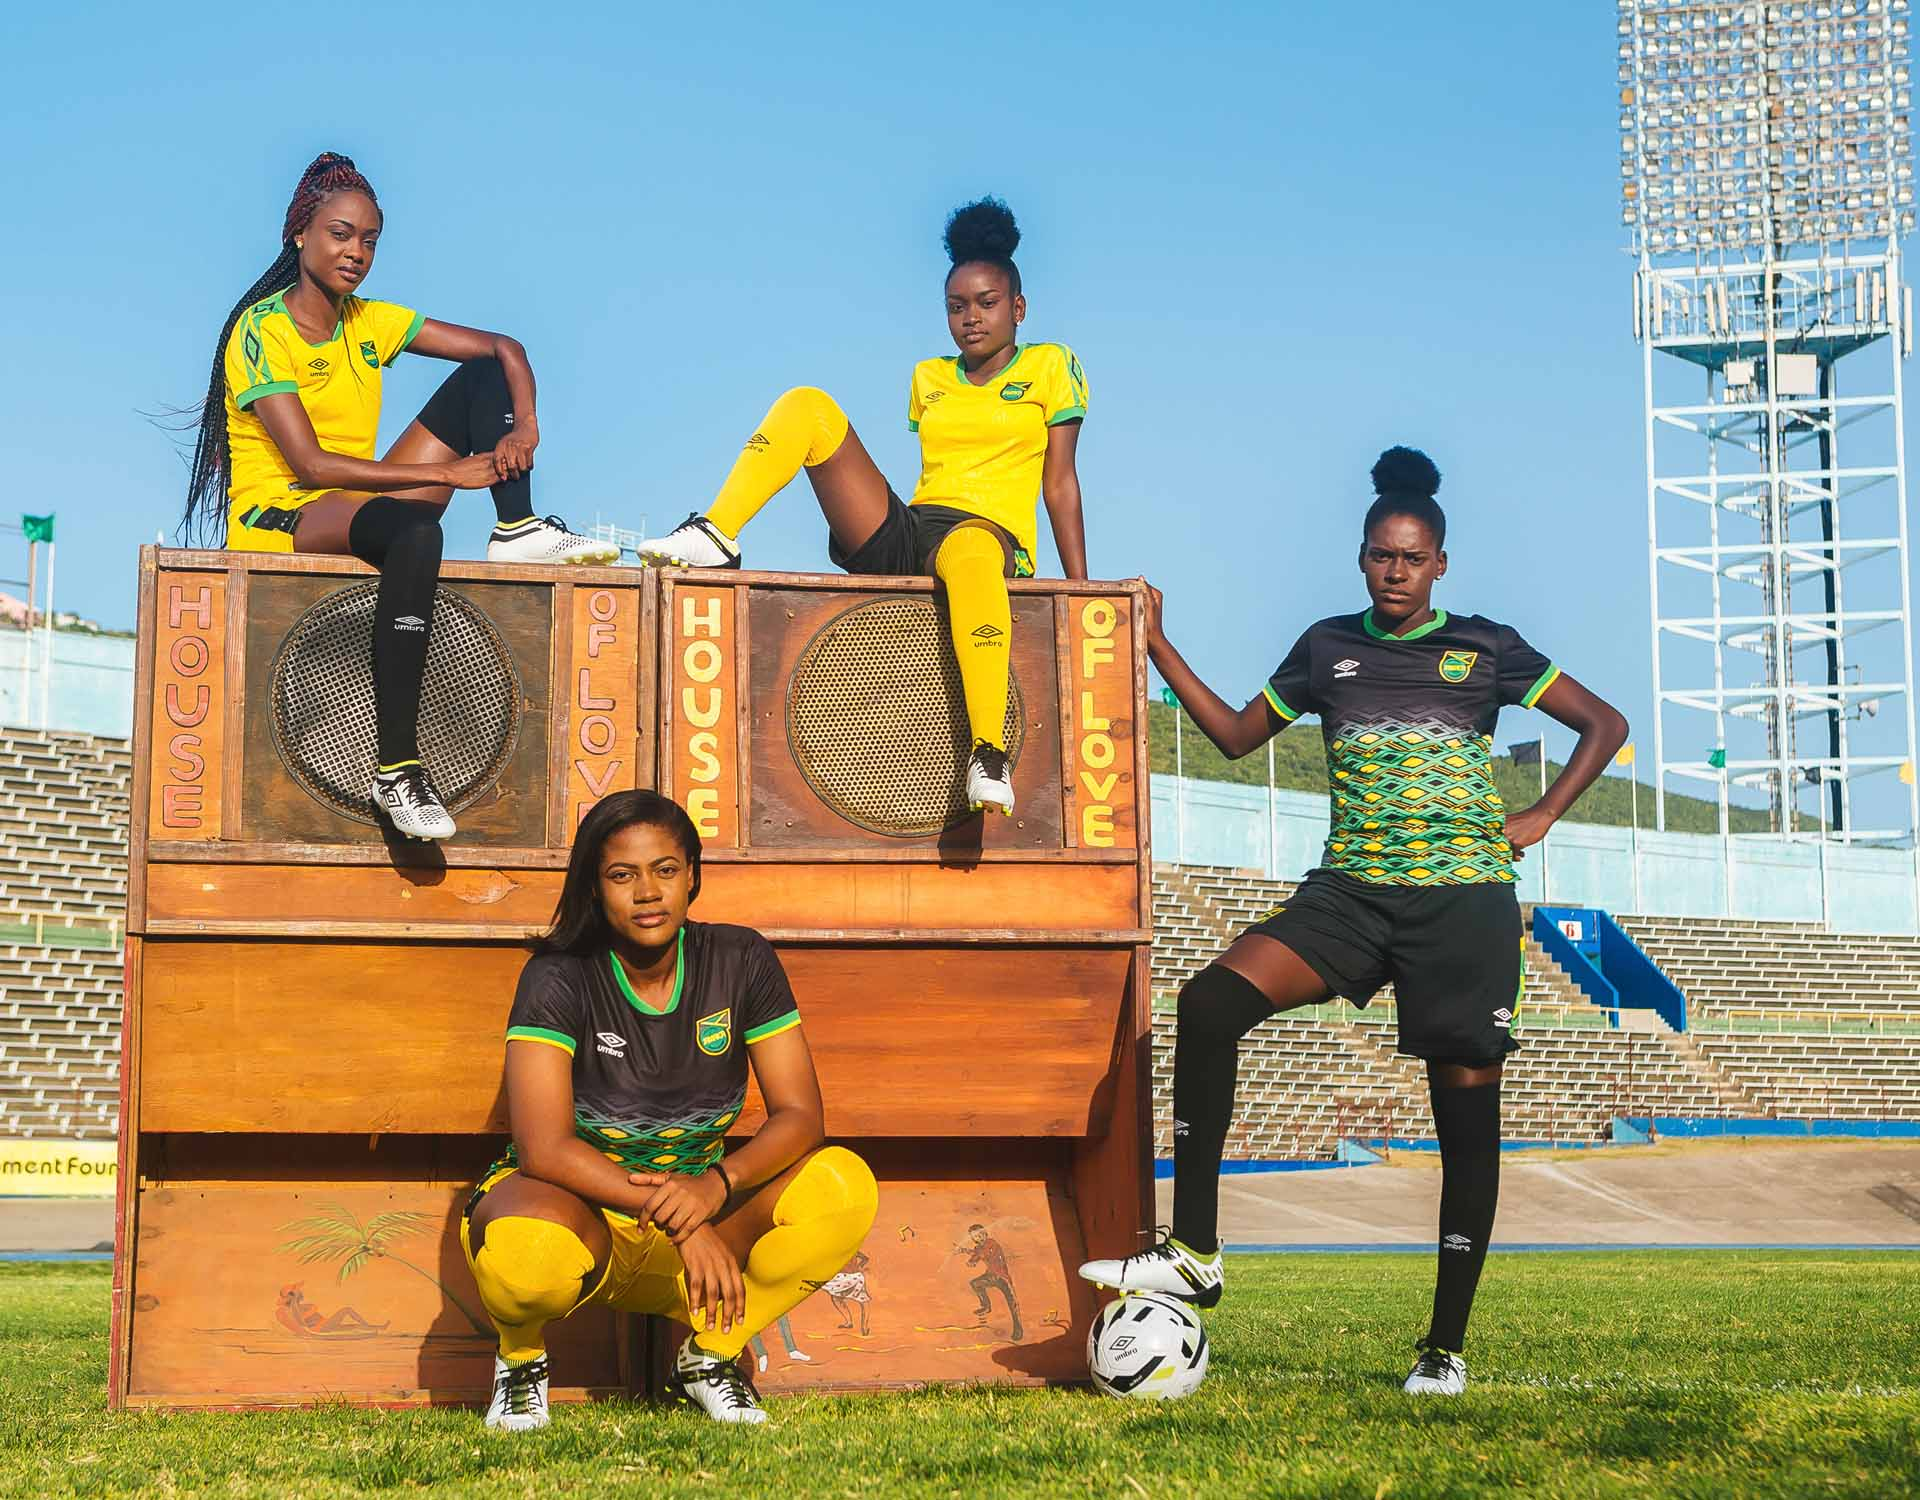 6-jamaica-umbro-design-interview.jpg